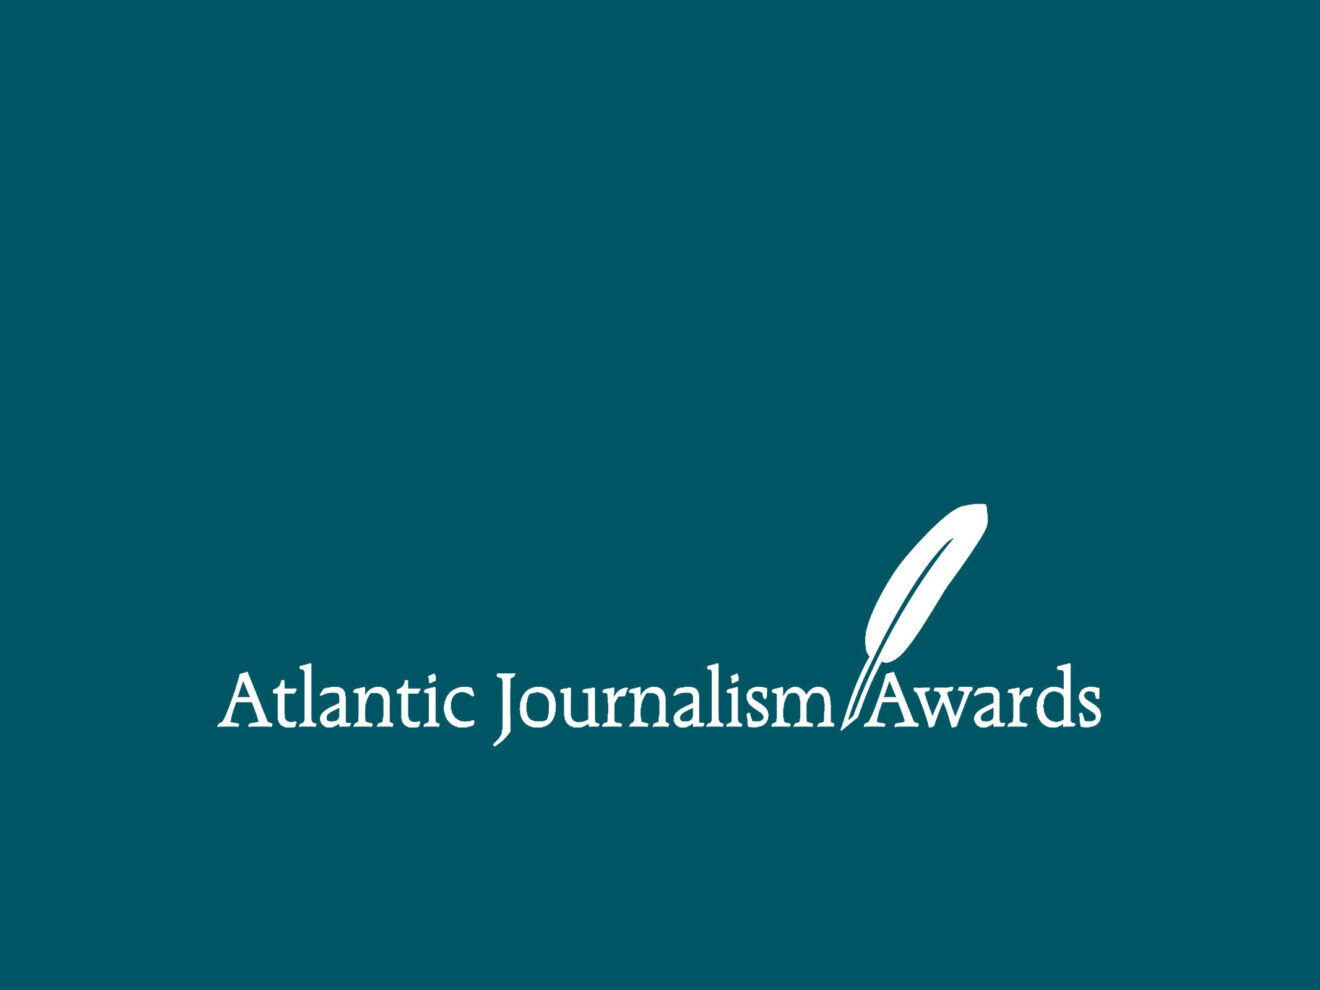 Atlantic Journalism Awards announce 2020 Gold and Silver winners